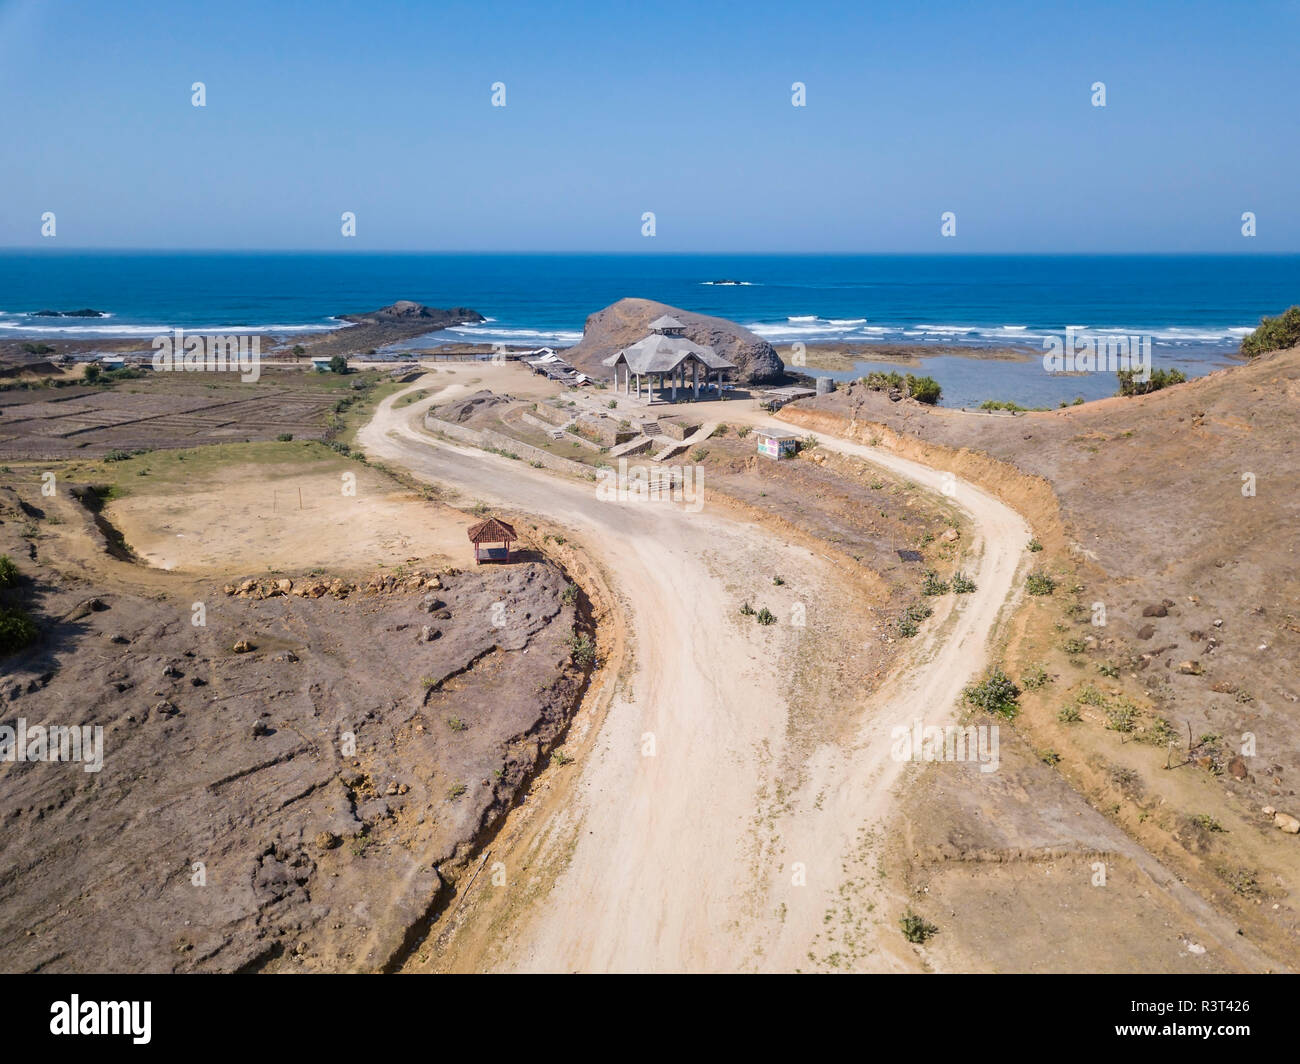 Indonesia, Aerial view of Lombok, sand track to temple - Stock Image